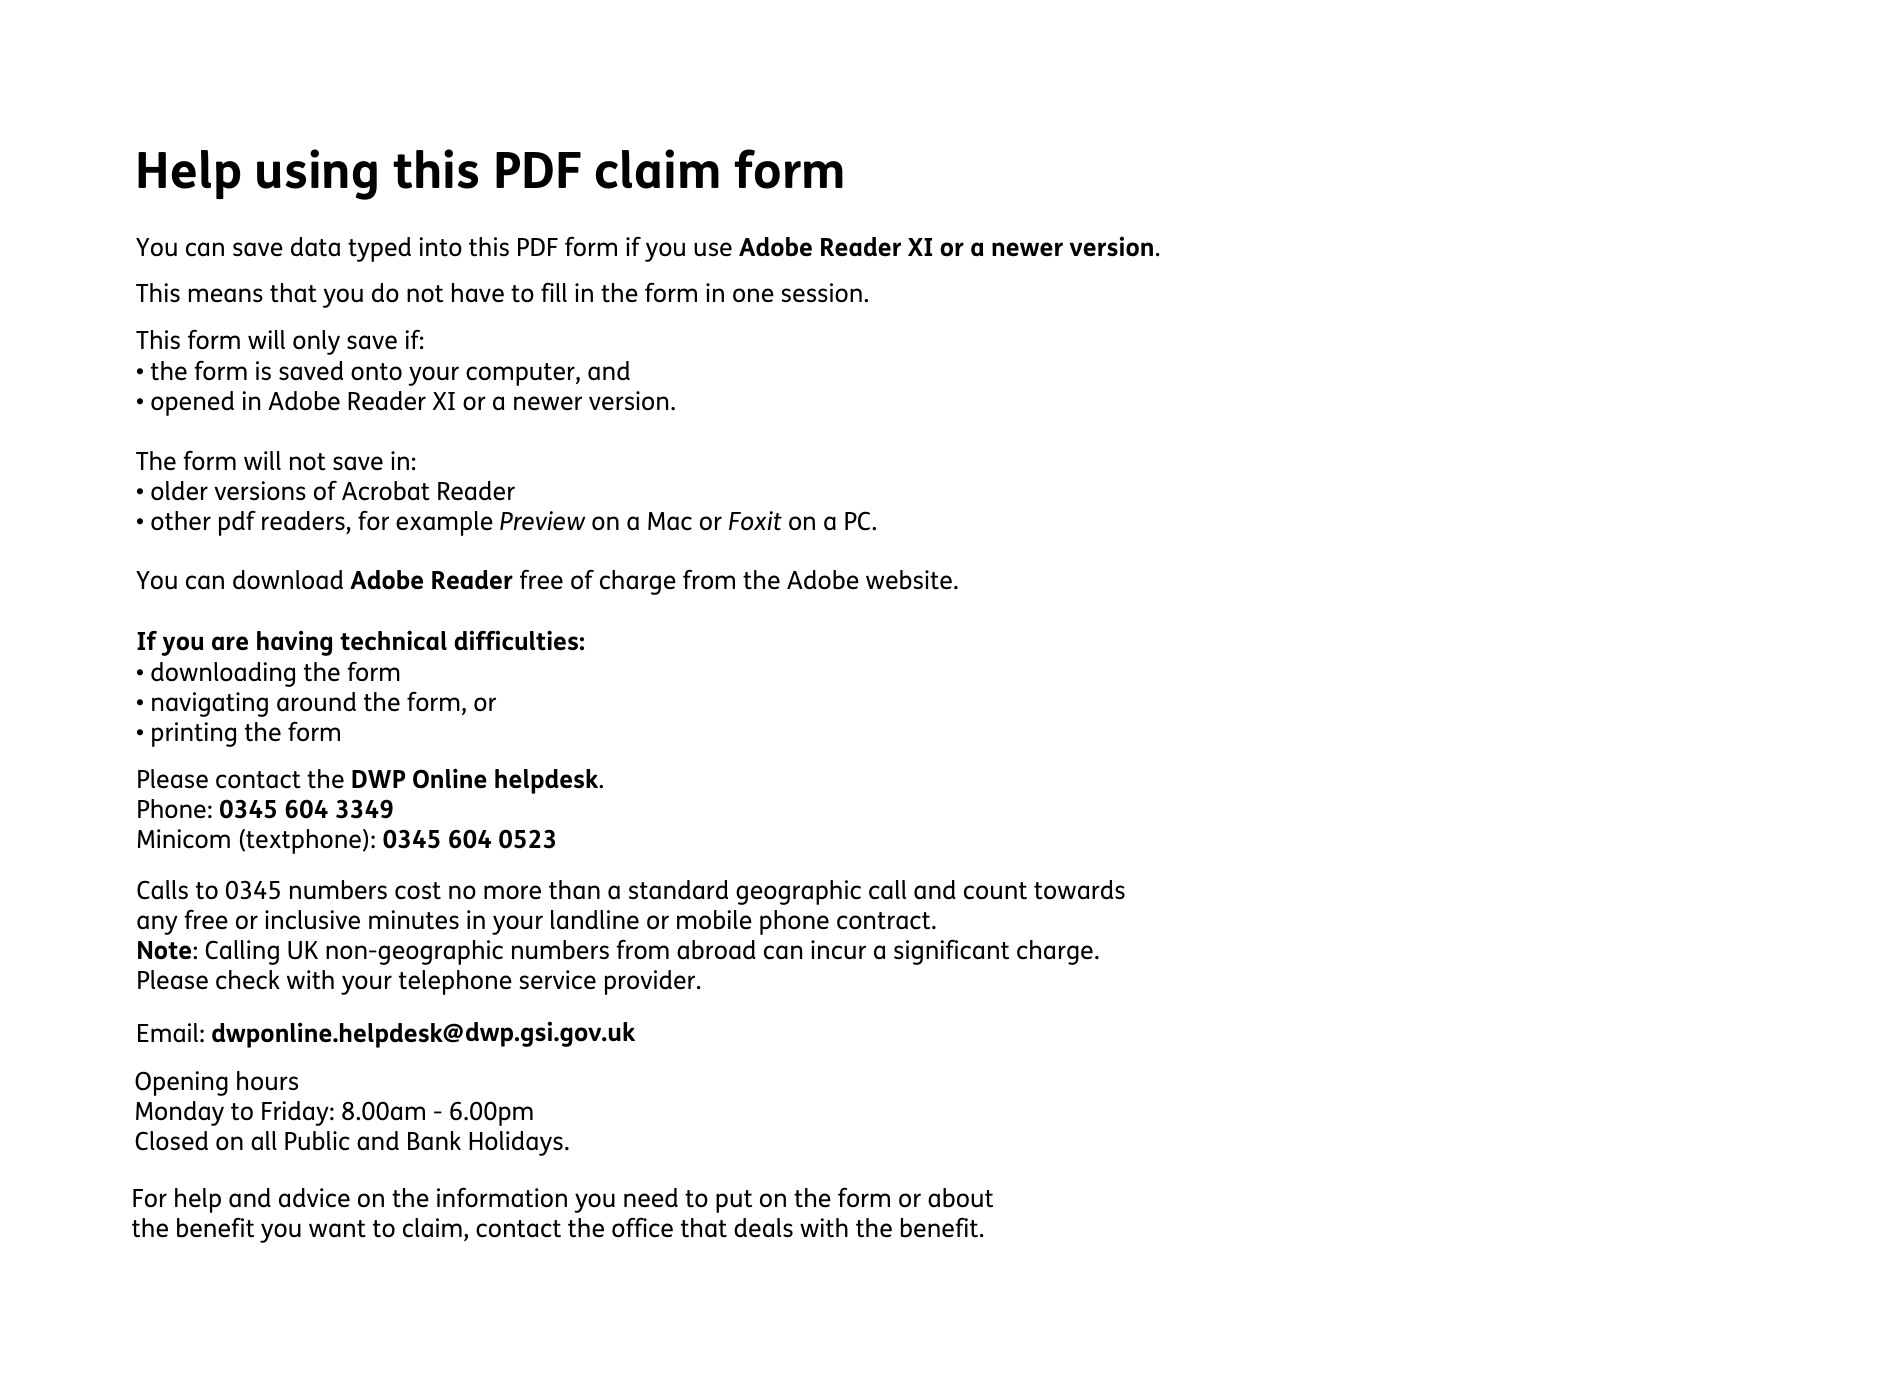 Form explorer attachment ipc br1 nsp form if you reach state pension age on or after 6 april 2016 you can claim now using this form falaconquin